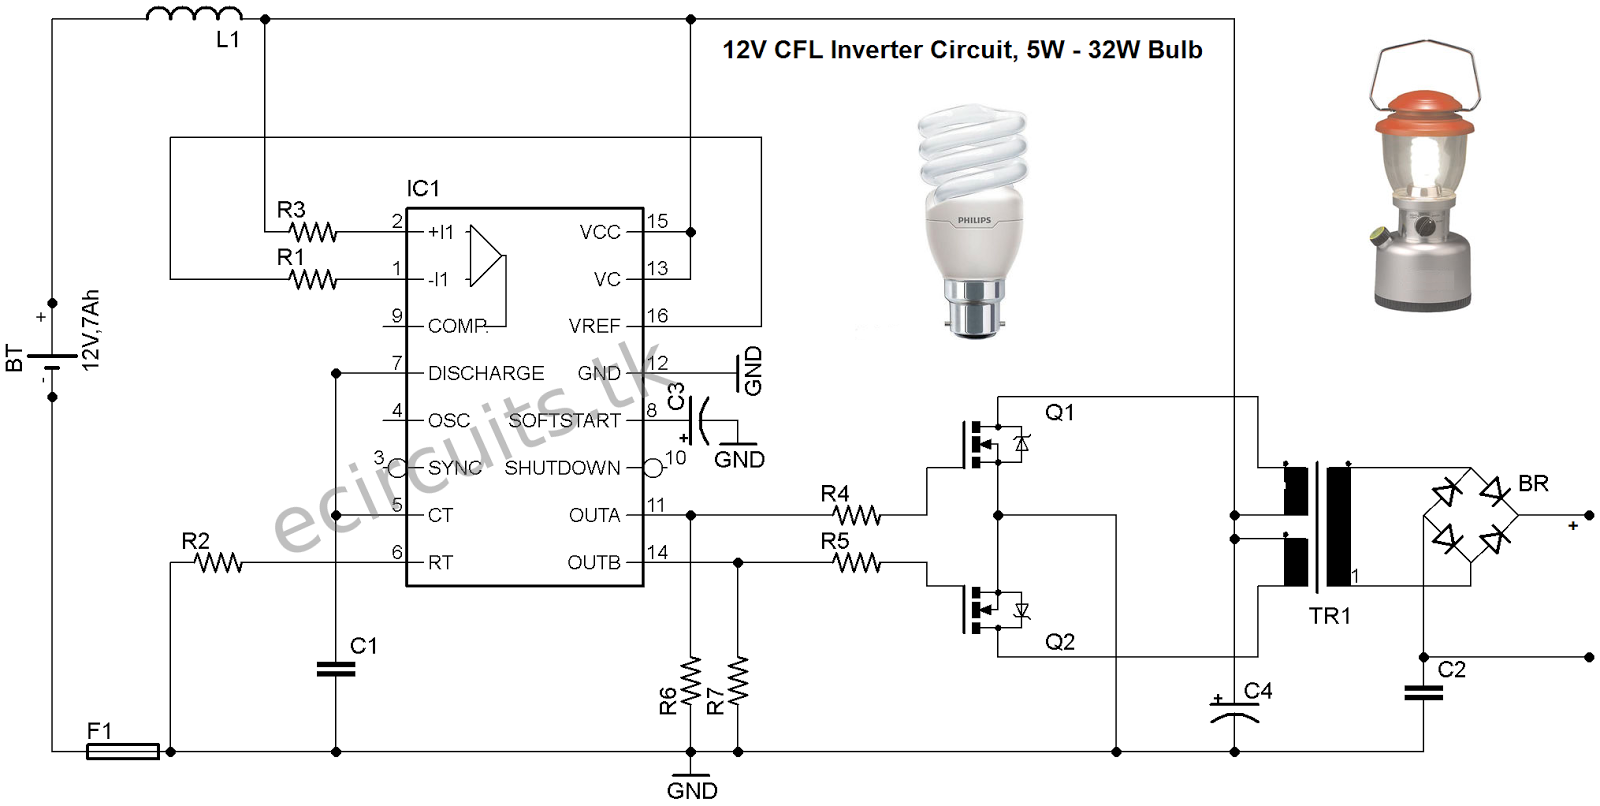 12v Cfl Emergency Light Circuit Using 3525 Ic Mini Inverter CFL Light Bulb  Components Cfl Wiring Diagram